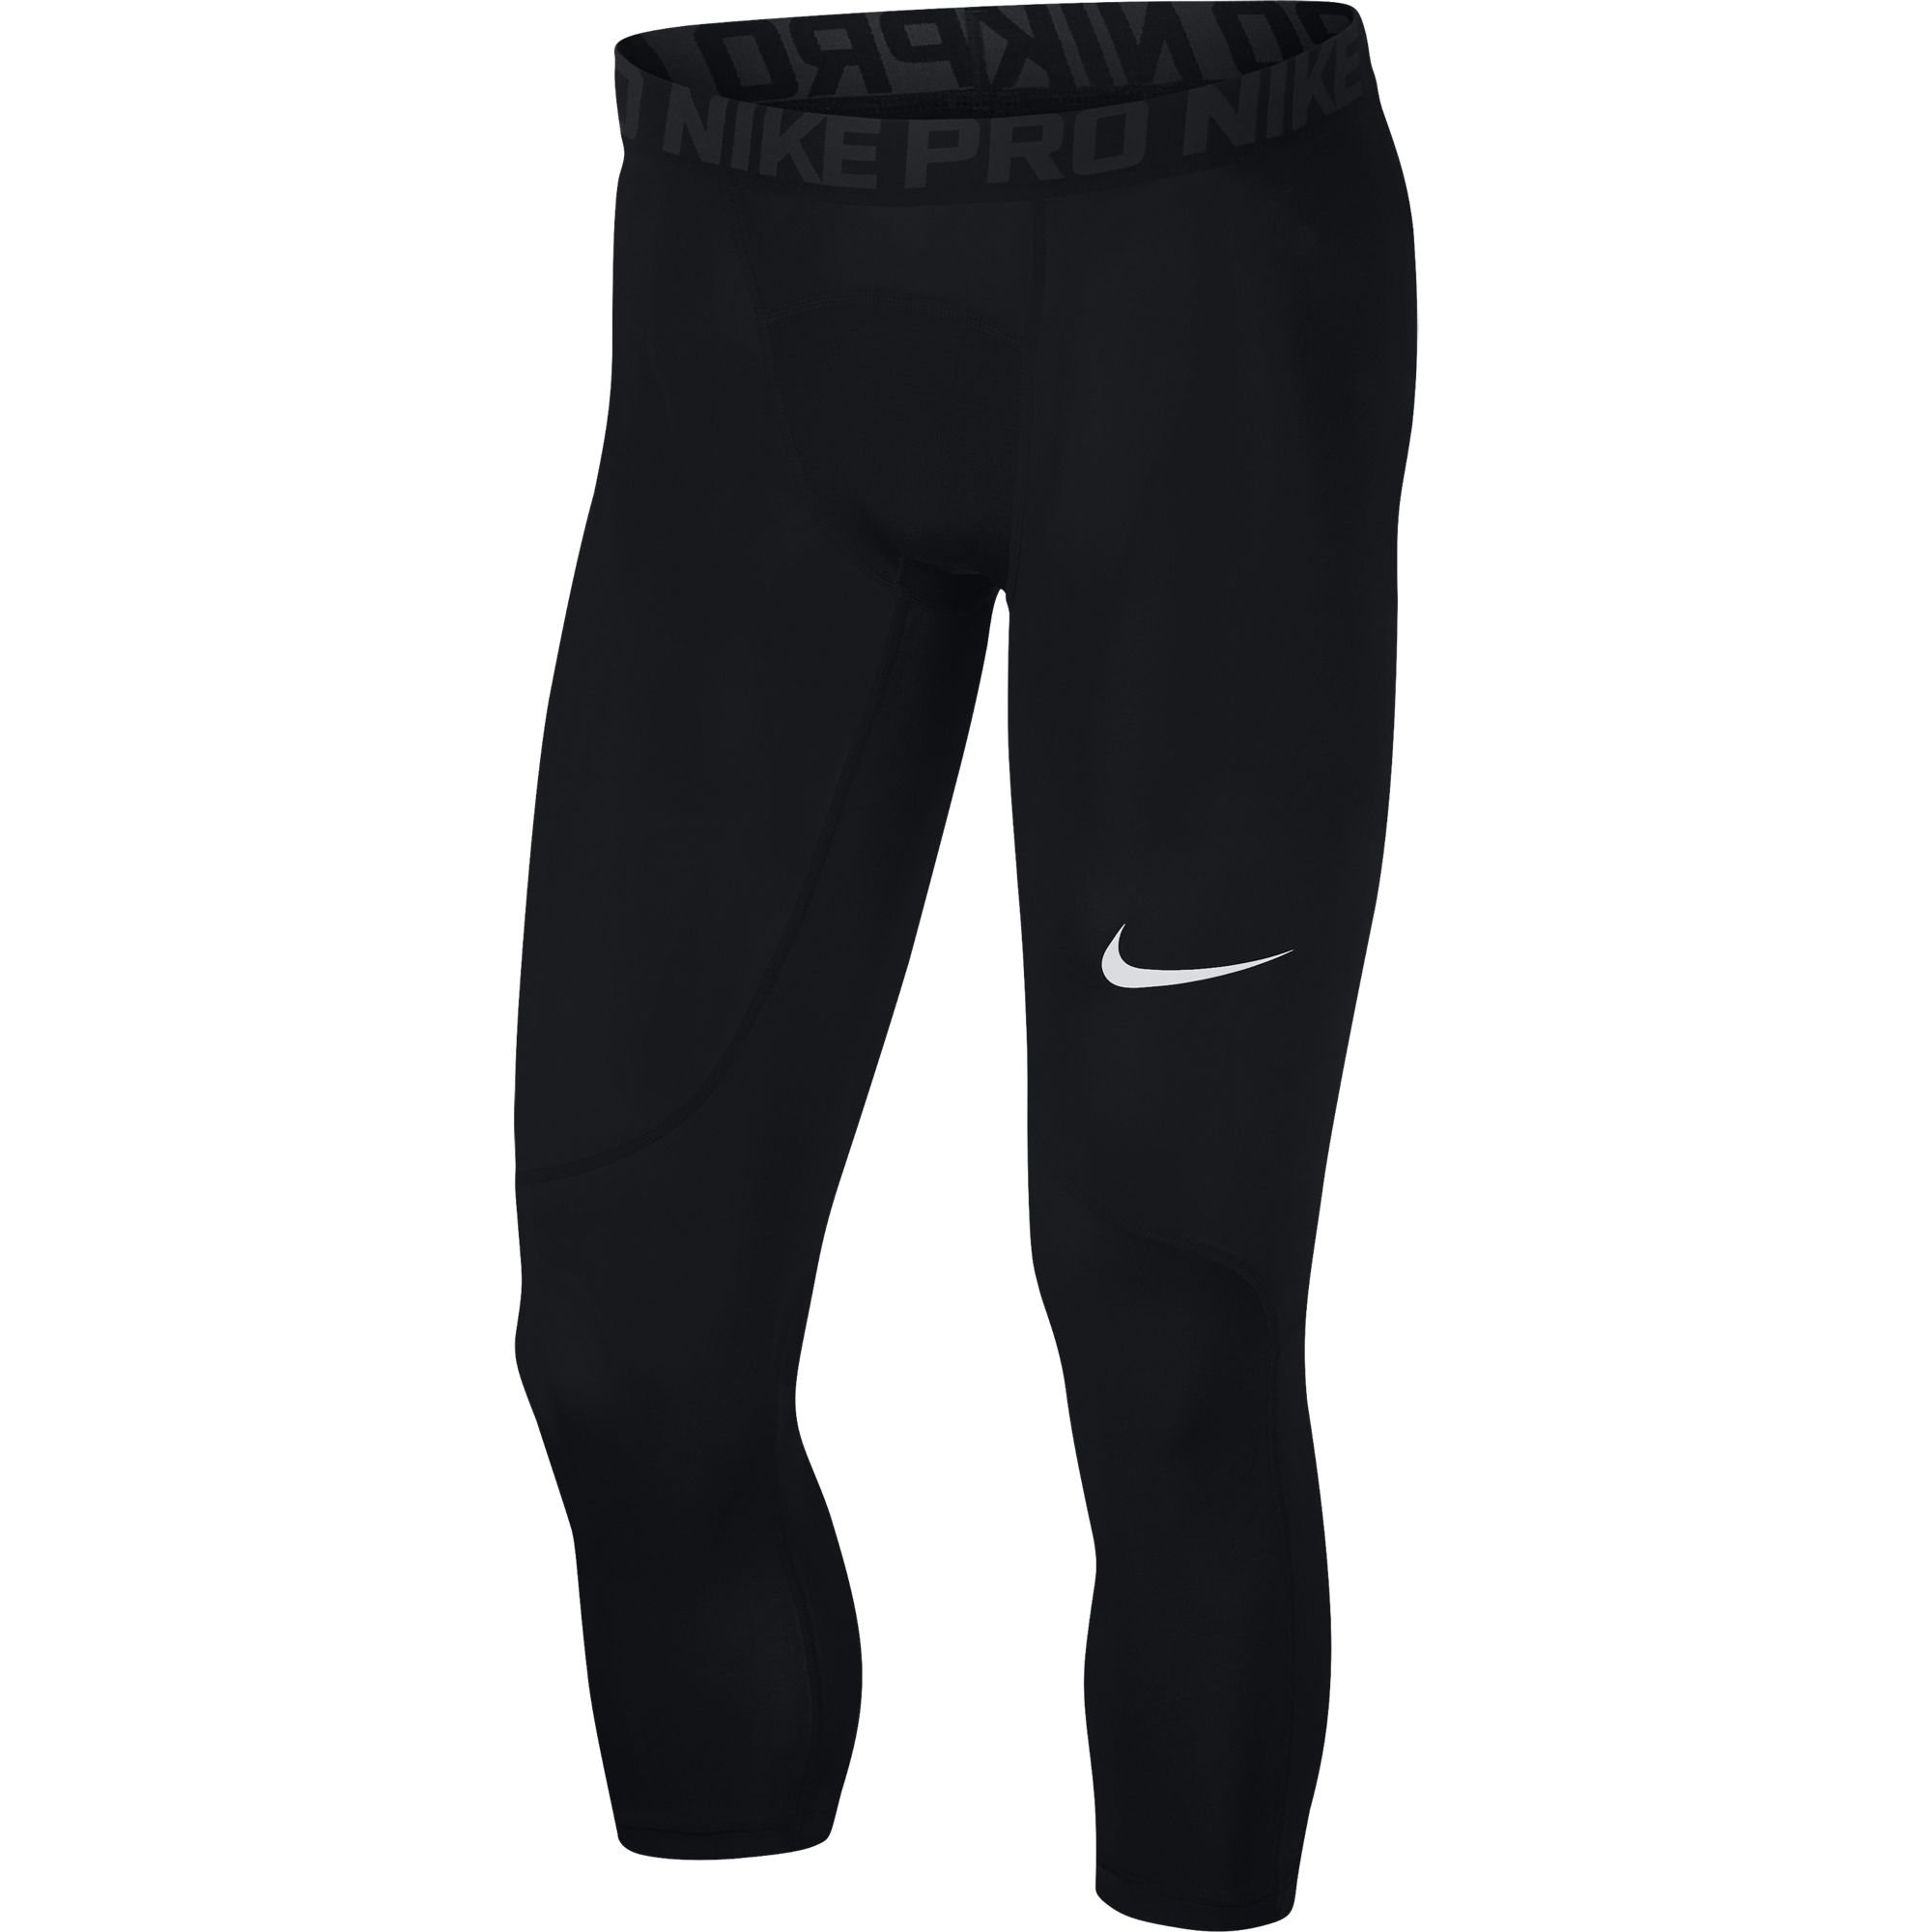 Men's Pro Three-Quarter Tight, Black, swatch